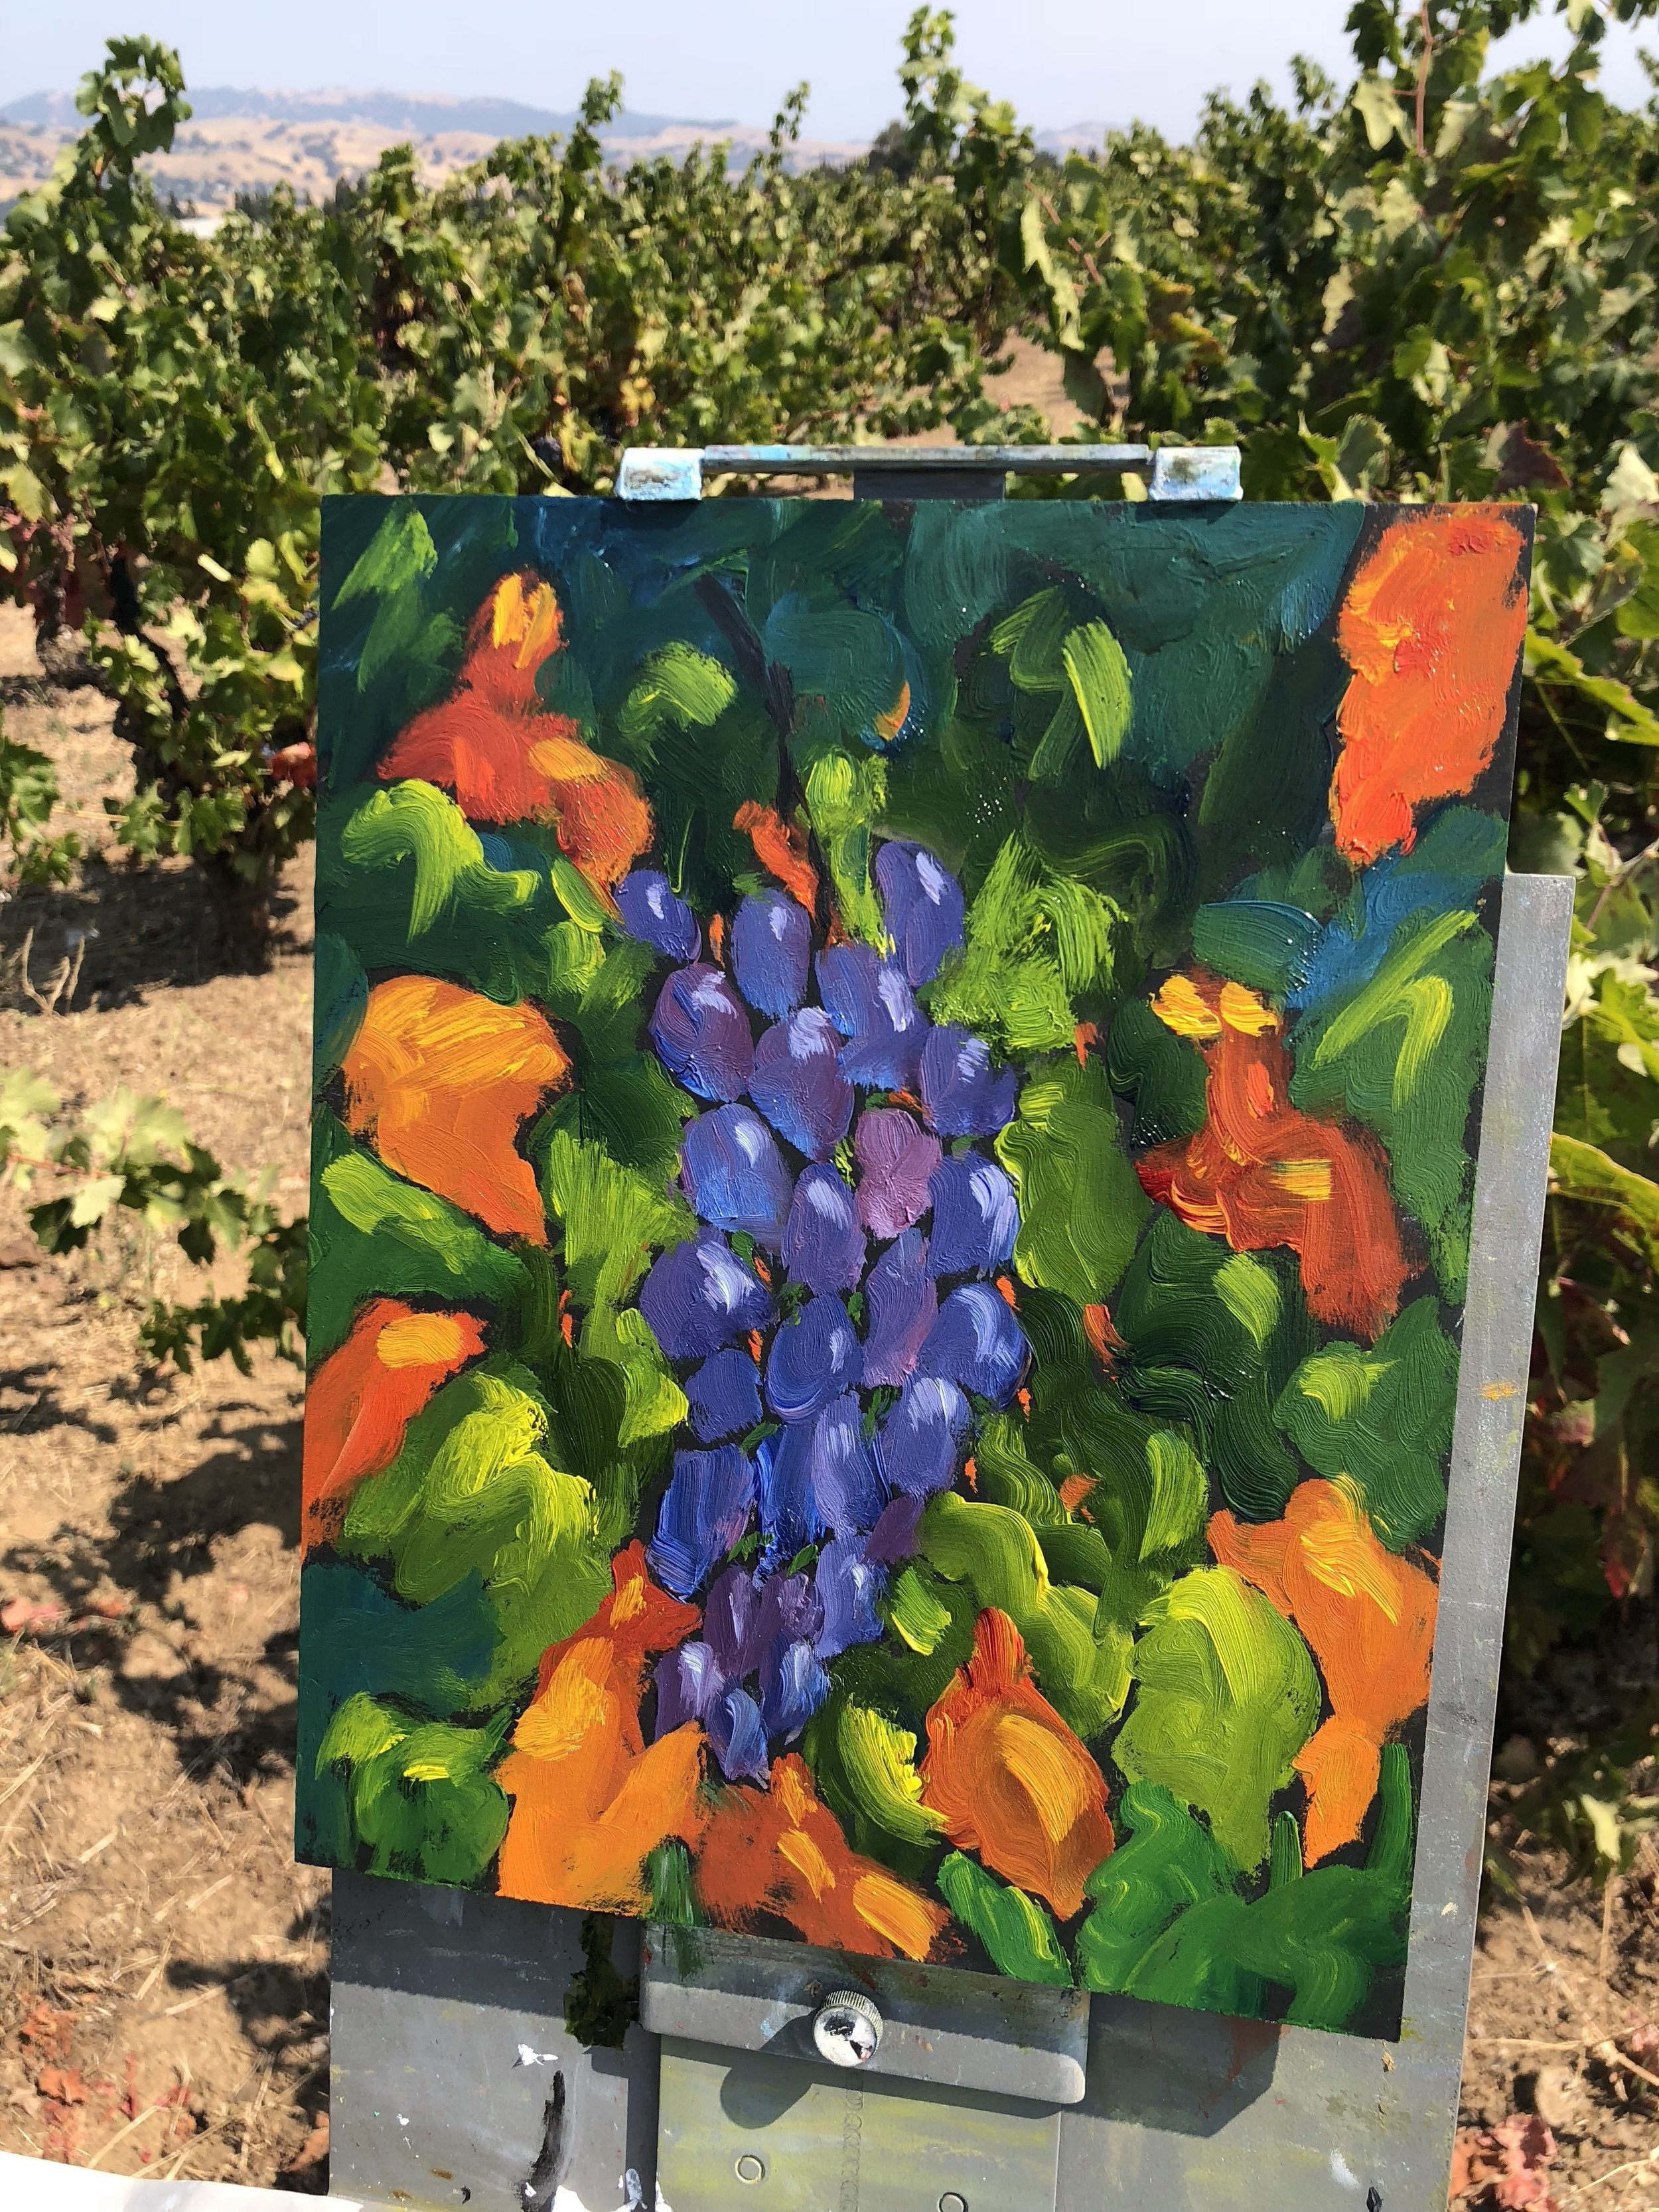 25 minute end of day painting at Guglielmo Winery